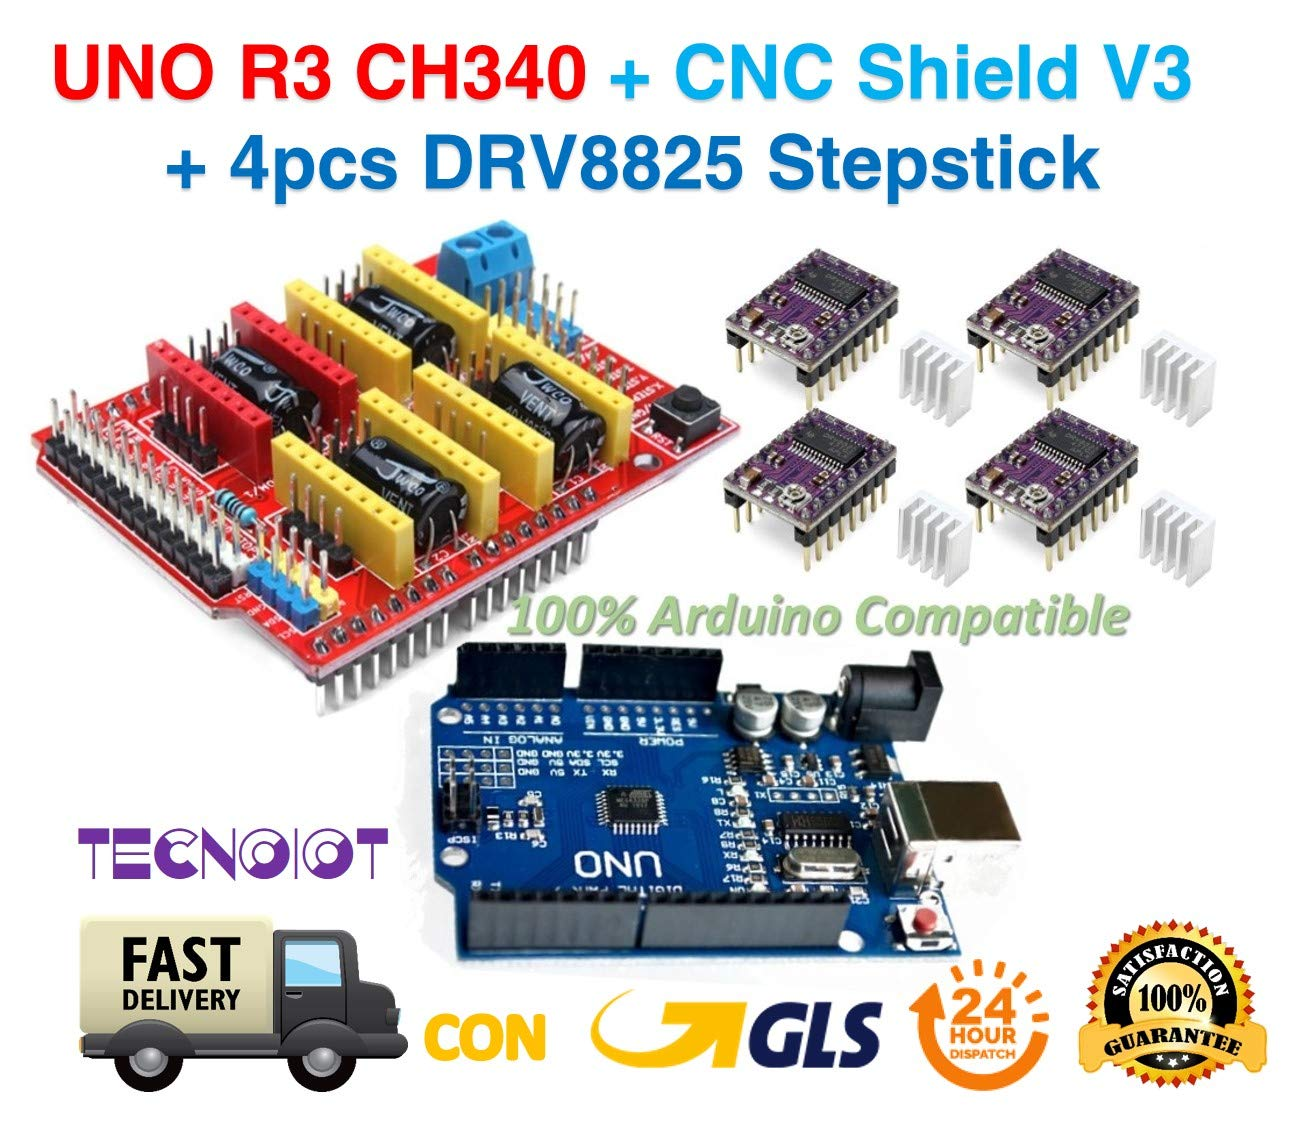 PACK 3D PRINTER - UNO R3 + CNC Shield V3 Expansion Board + 4pcs DRV8825 Stepper Motor Driver | Arduino expansion module CNC shield V3.0 + Arduino UNO R3 + 4pcs stepper motor controllers DRV8825 with heat sinks TECNOIOT UNO+CNC V3+DRV8825